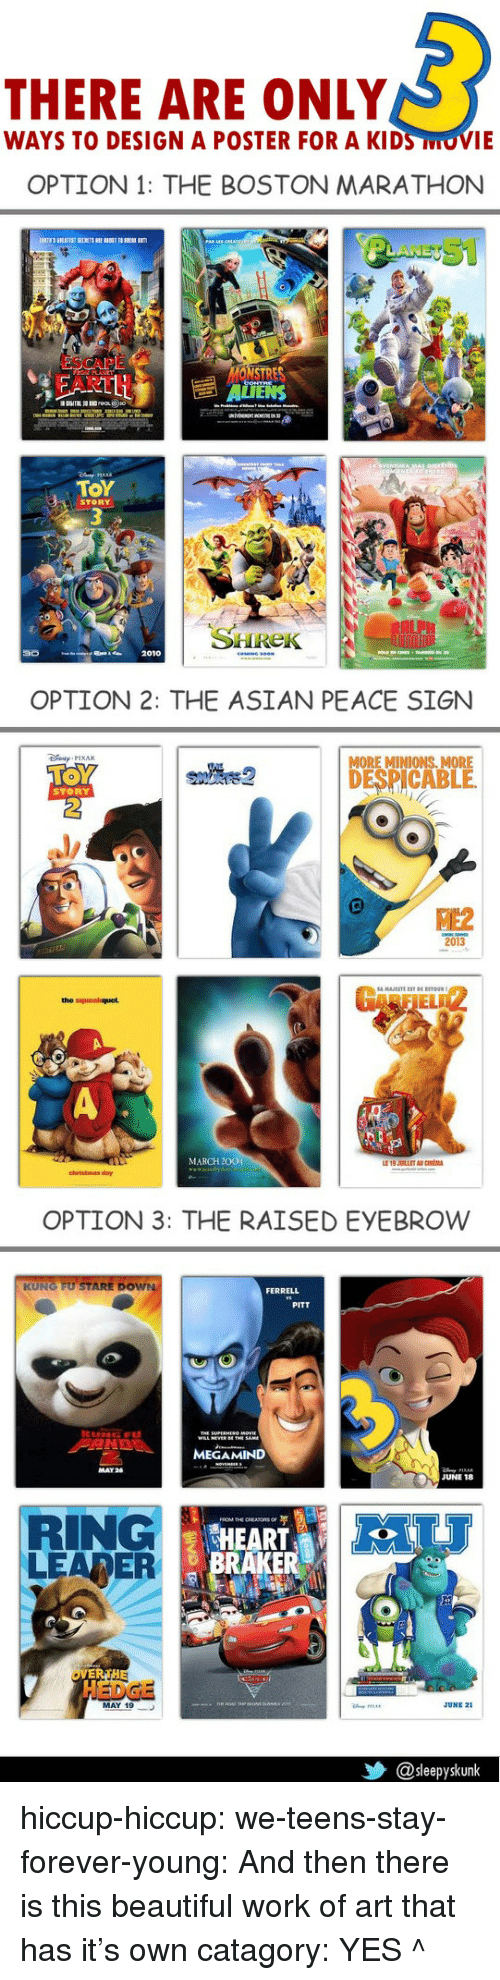 forever young: THERE ARE ONLY  WAYS TO DESIGN A POSTER FOR A KIDS MOVIE   OPTION 1: THE BOSTON MARATHON  ESCAPE  FART  ONSTRES  ΤΟΥ  STORY  SHHRek  2010   OPTION 2: THE ASIAN PEACE SIGN  MORE MINIONS. MORE  DESPICABLE  STORY  ME2  2013  RFIEL  MARCH 200  christmas day   OPTION 3: THE RAISED EYEBROW  FERRELL  PITT  MAY26  JUNE 18  RING  LEARER  HEART  RAKER  HEDGE  MAY 19  JUNE 21  乡@sleepyskunk hiccup-hiccup:  we-teens-stay-forever-young:  And then there is this beautiful work of art that has it's own catagory:   YES ^